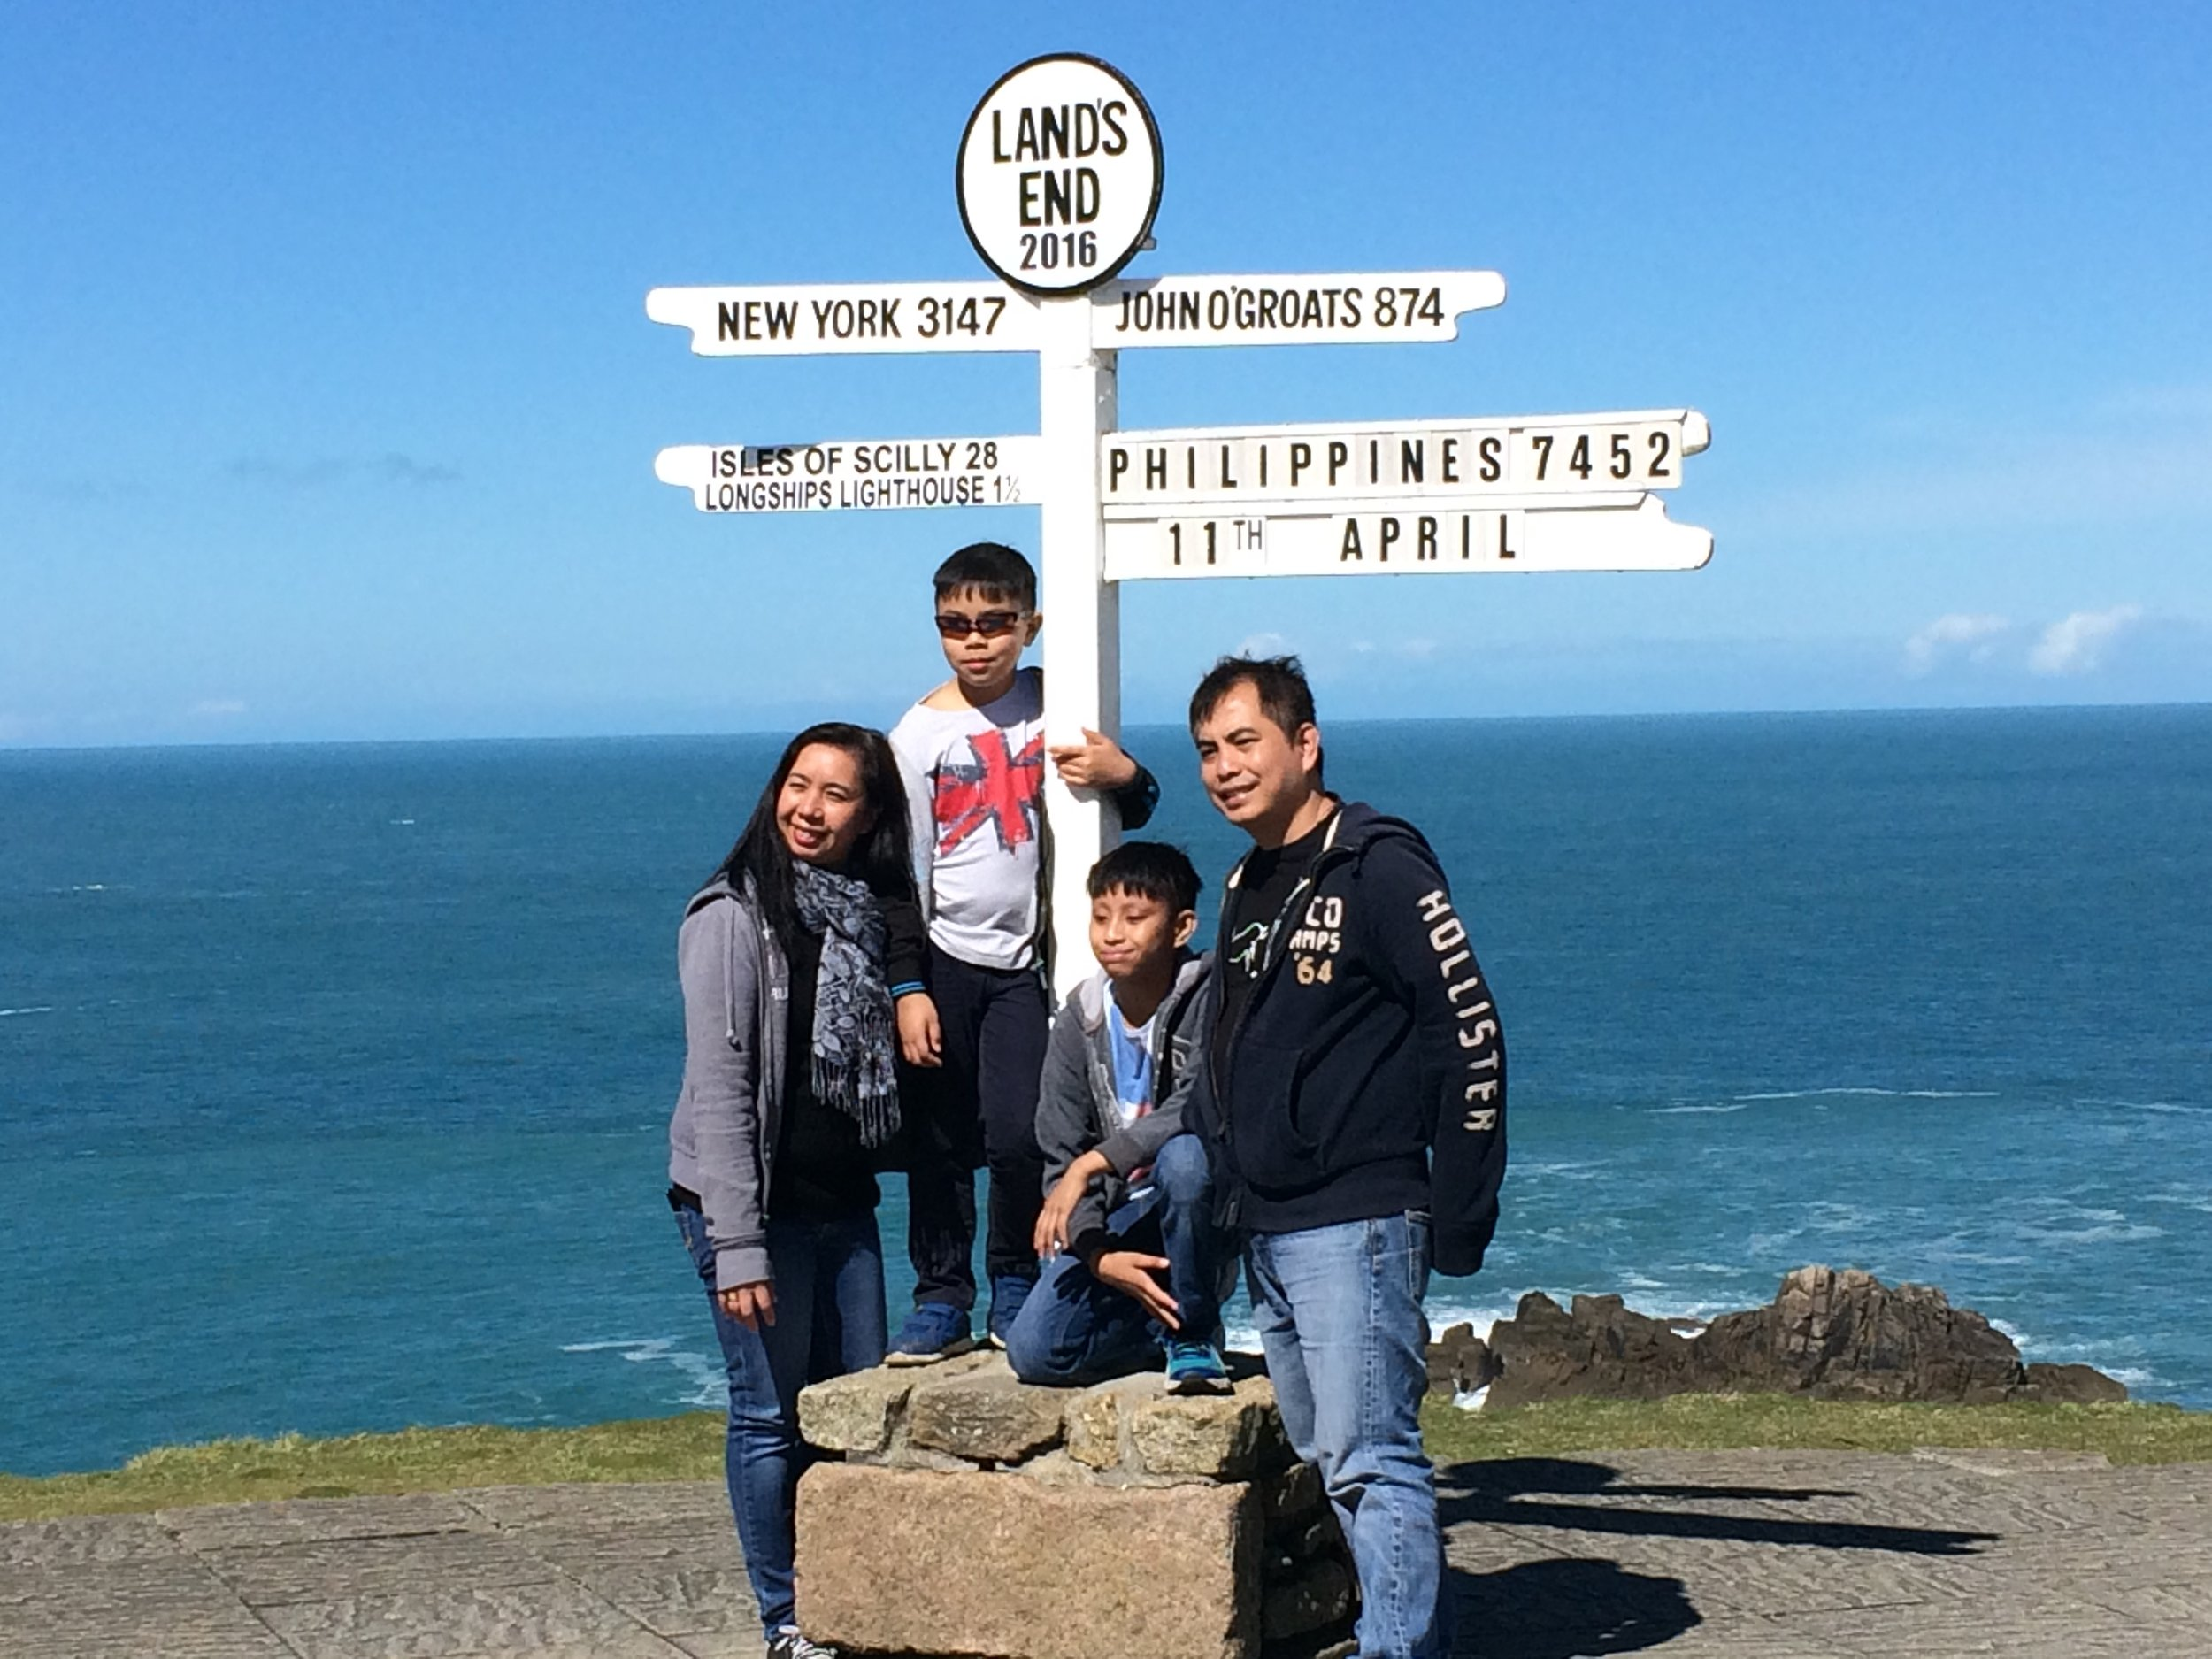 The most famous landmark at Land's End is the signpost, but since they charge 9 pounds just to pose (plus the cost of the photo), I took a shot of this Filipino family instead.